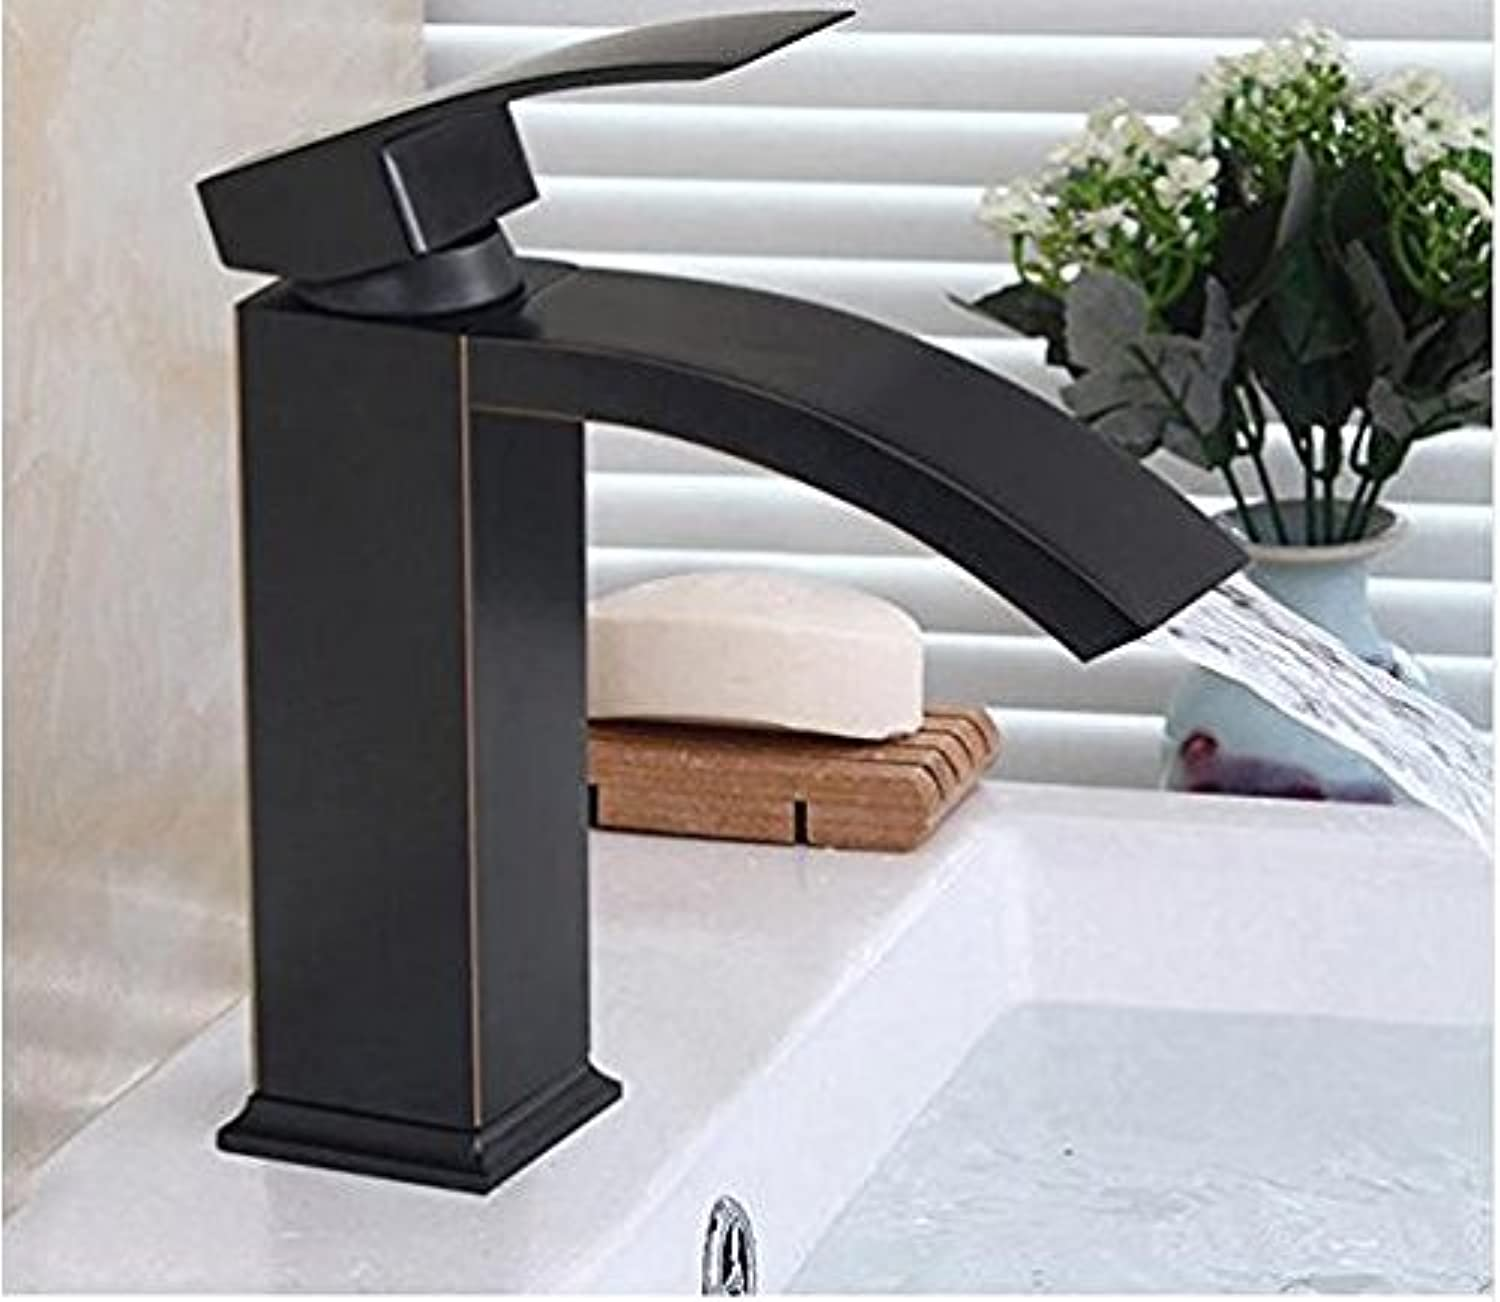 Diongrdk Basin Faucet Bathroom Black Oil Rubbed Bronze Faucets Sink Mixer Water Tap Single Lever Tap